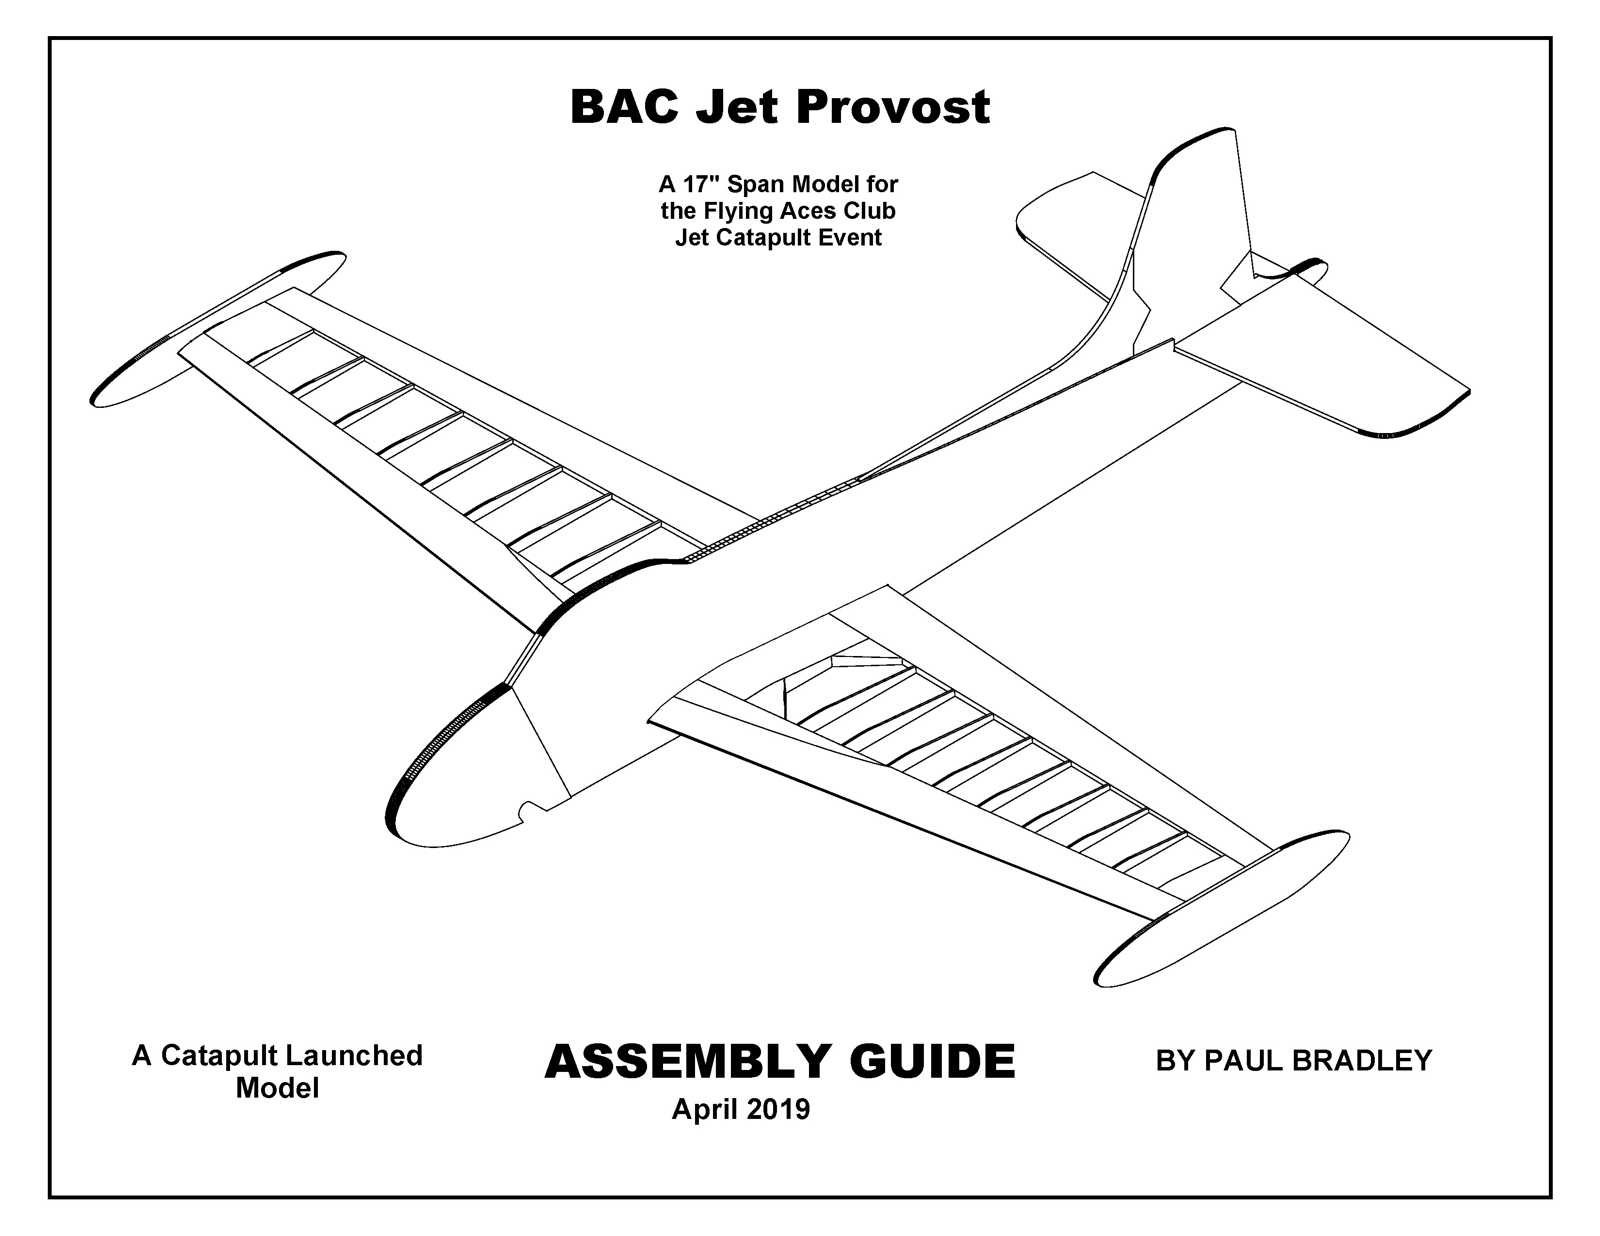 https://0201.nccdn.net/1_2/000/000/0ab/891/Pages-from-Jet-Provost-Jet-Cat-Assembly-Guide-1600x1236.jpg